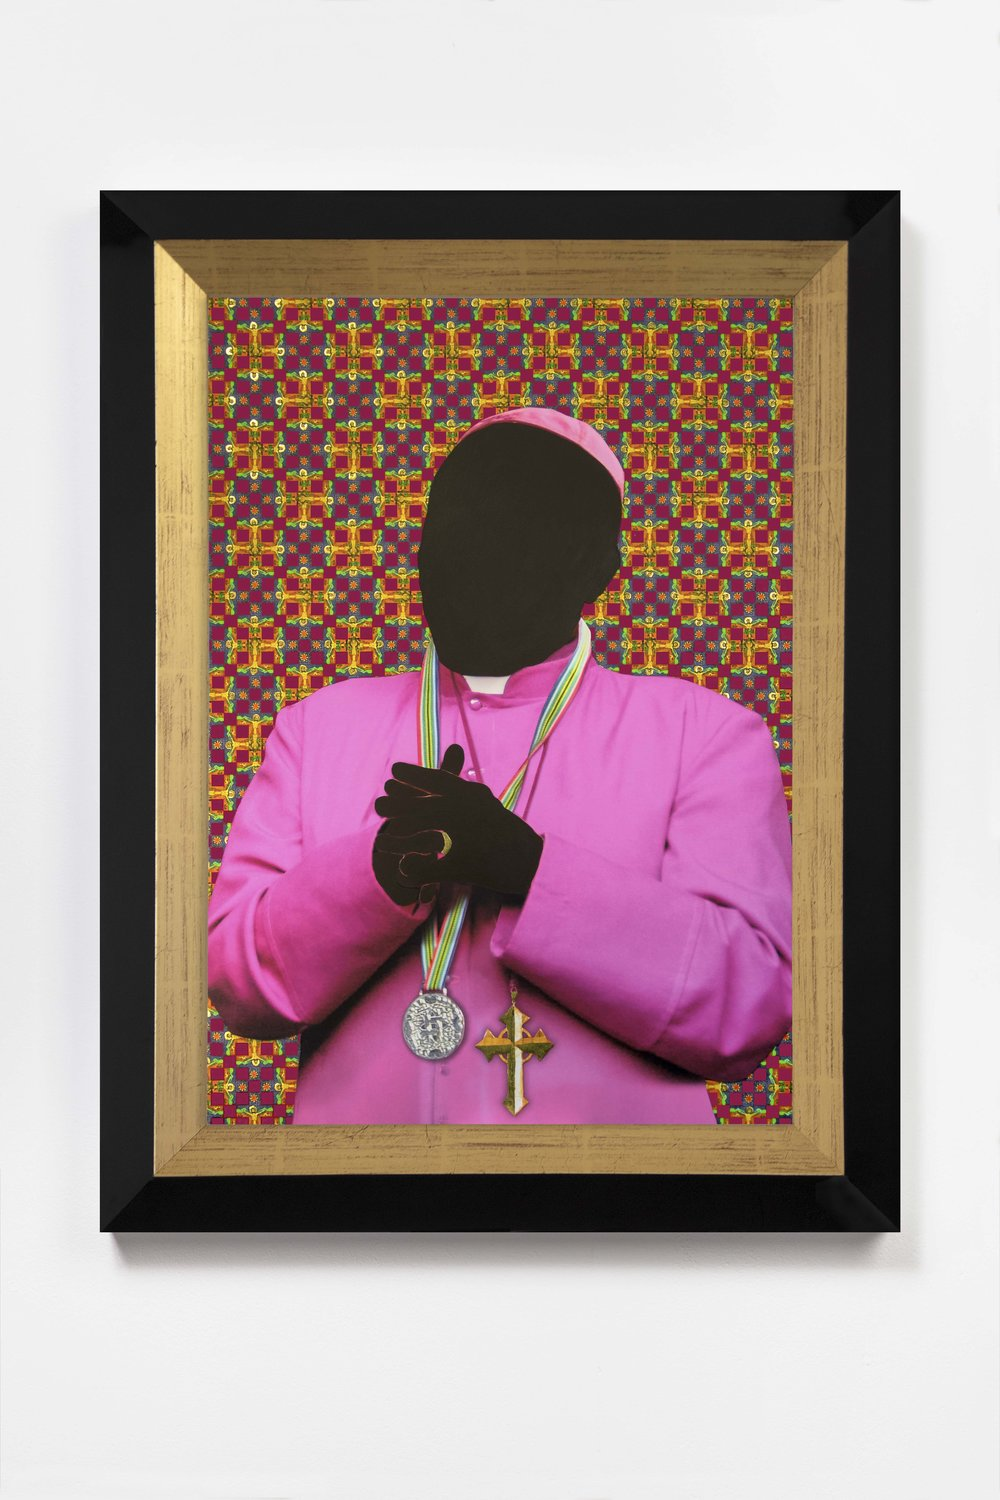 Portraits Framed Final_Desmond Tutu.jpg